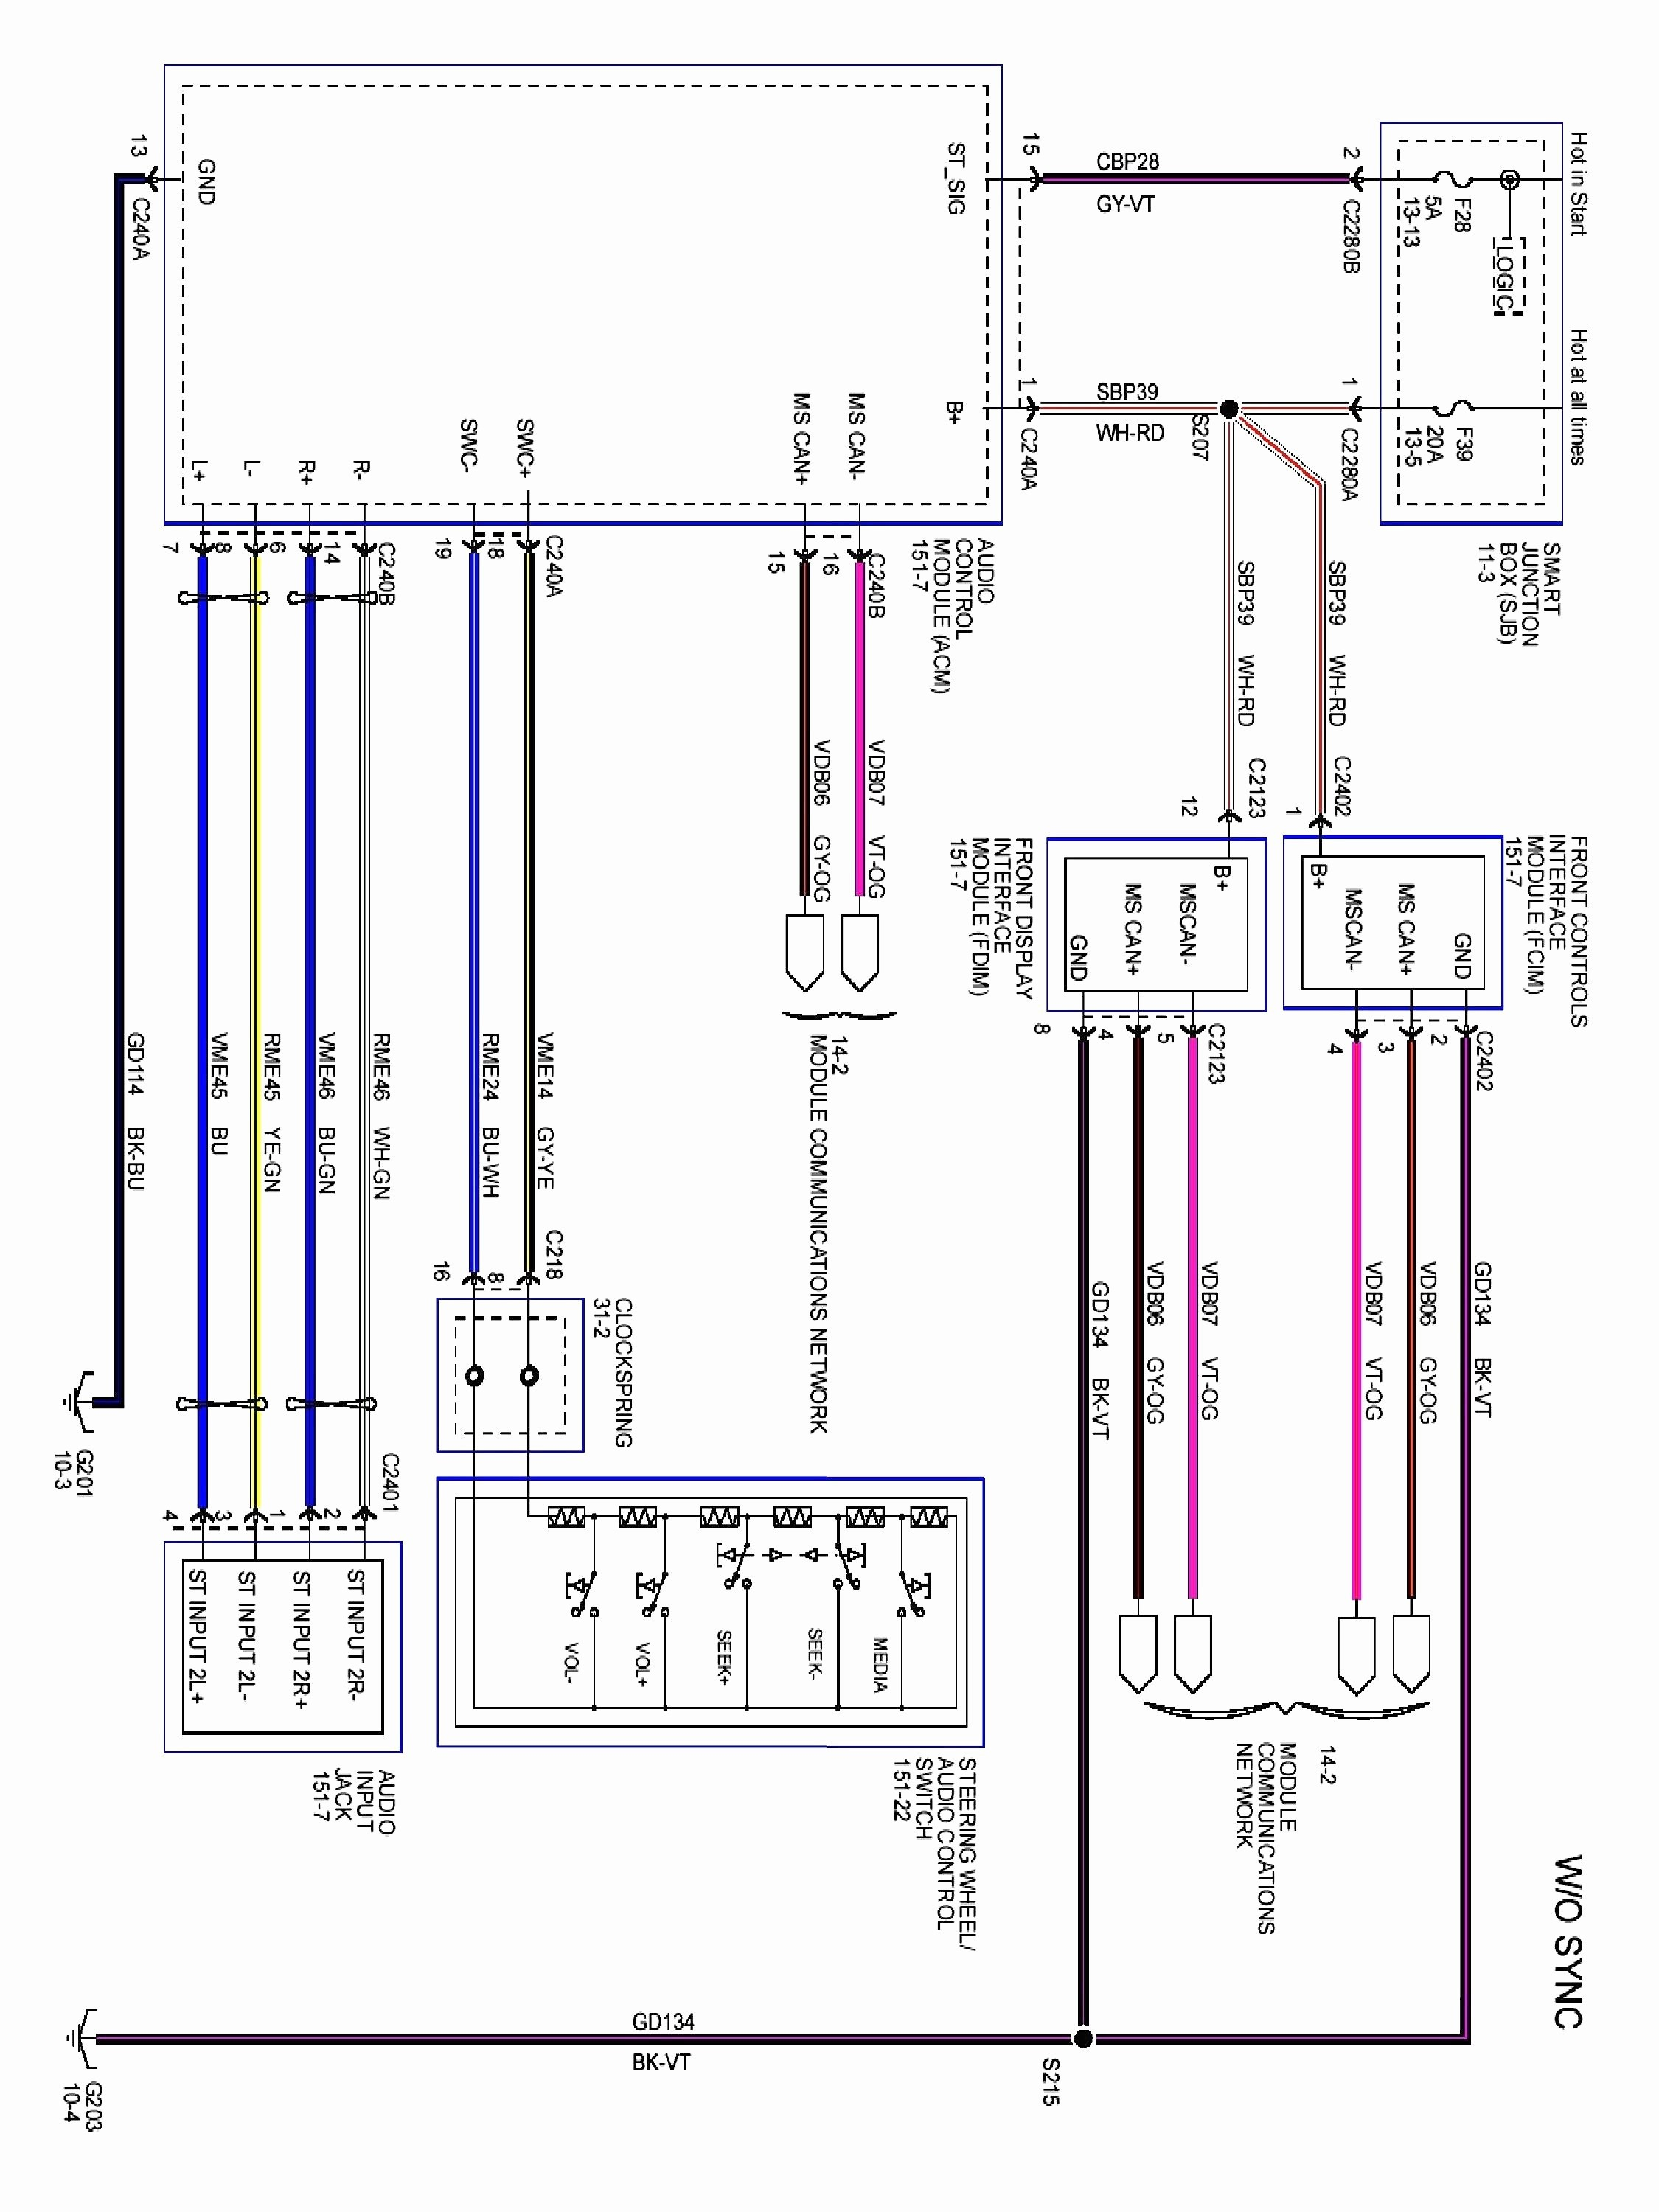 Front Wheel Drive Car Diagram Car Stereo Wiring Diagram Image Of Front Wheel Drive Car Diagram